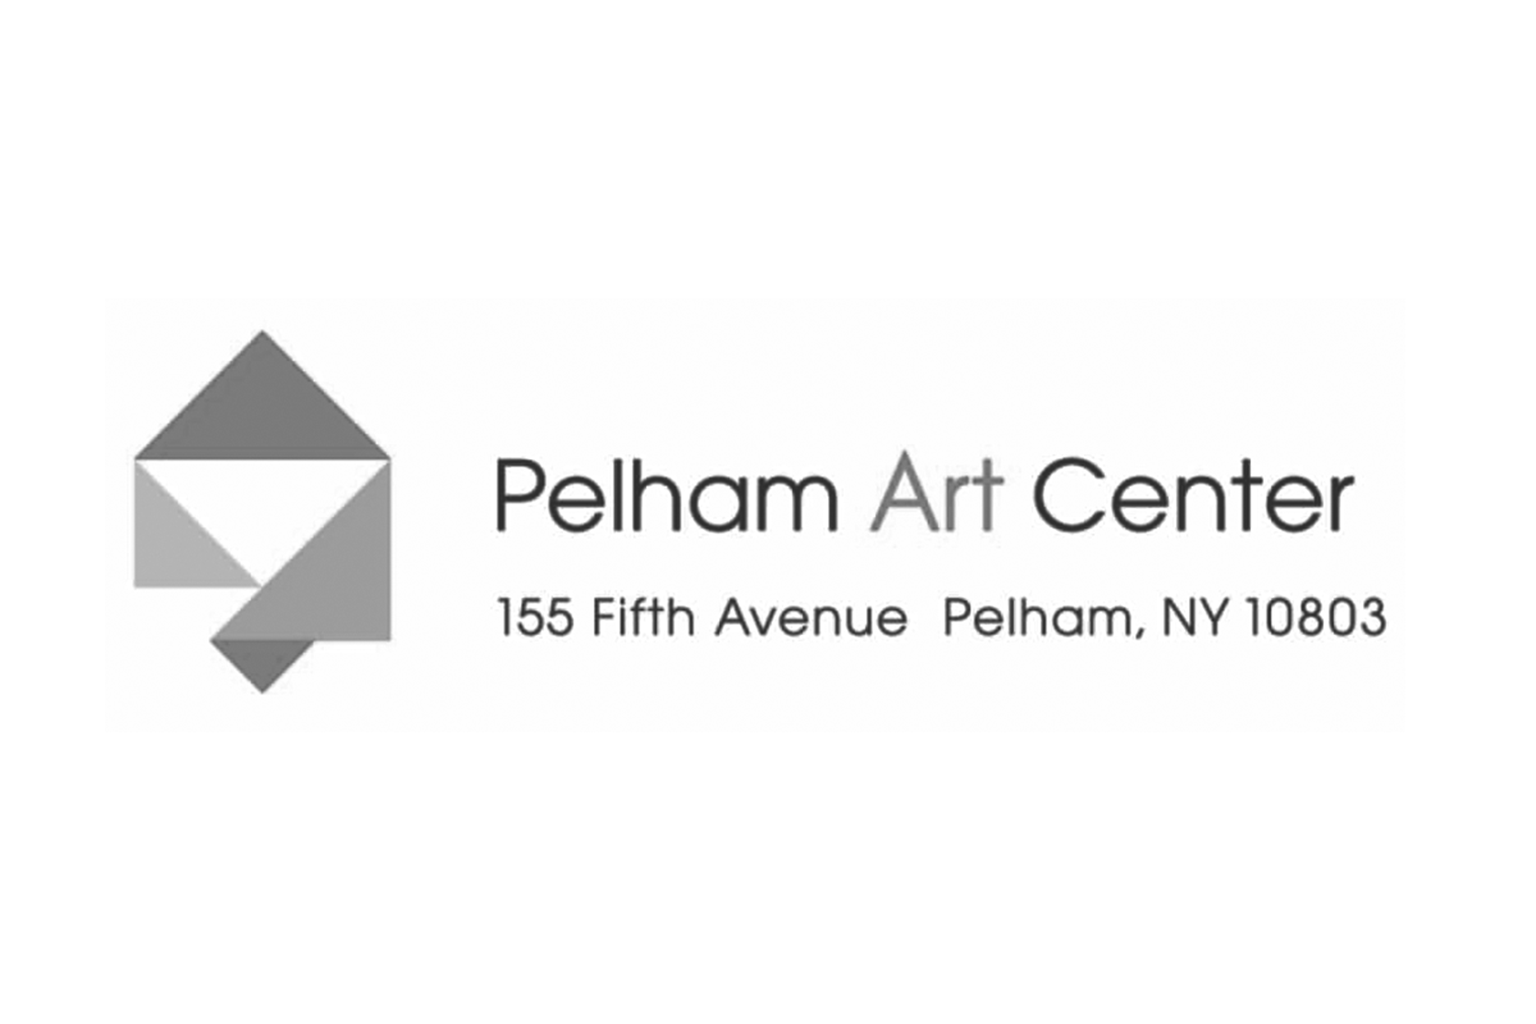 pelham-art-center.png